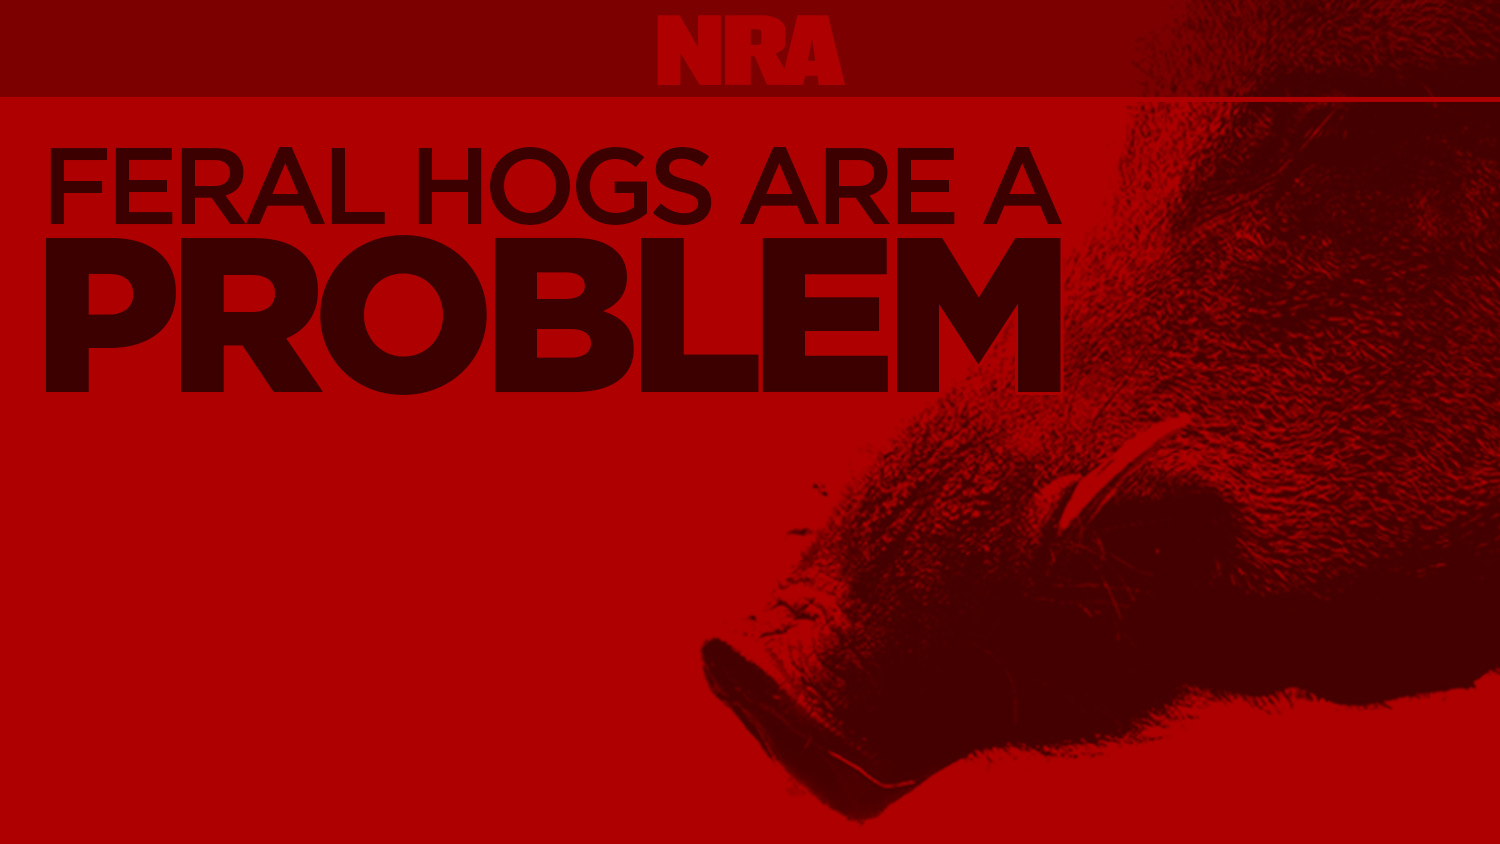 INFOGRAPHIC: Feral hogs are a problem